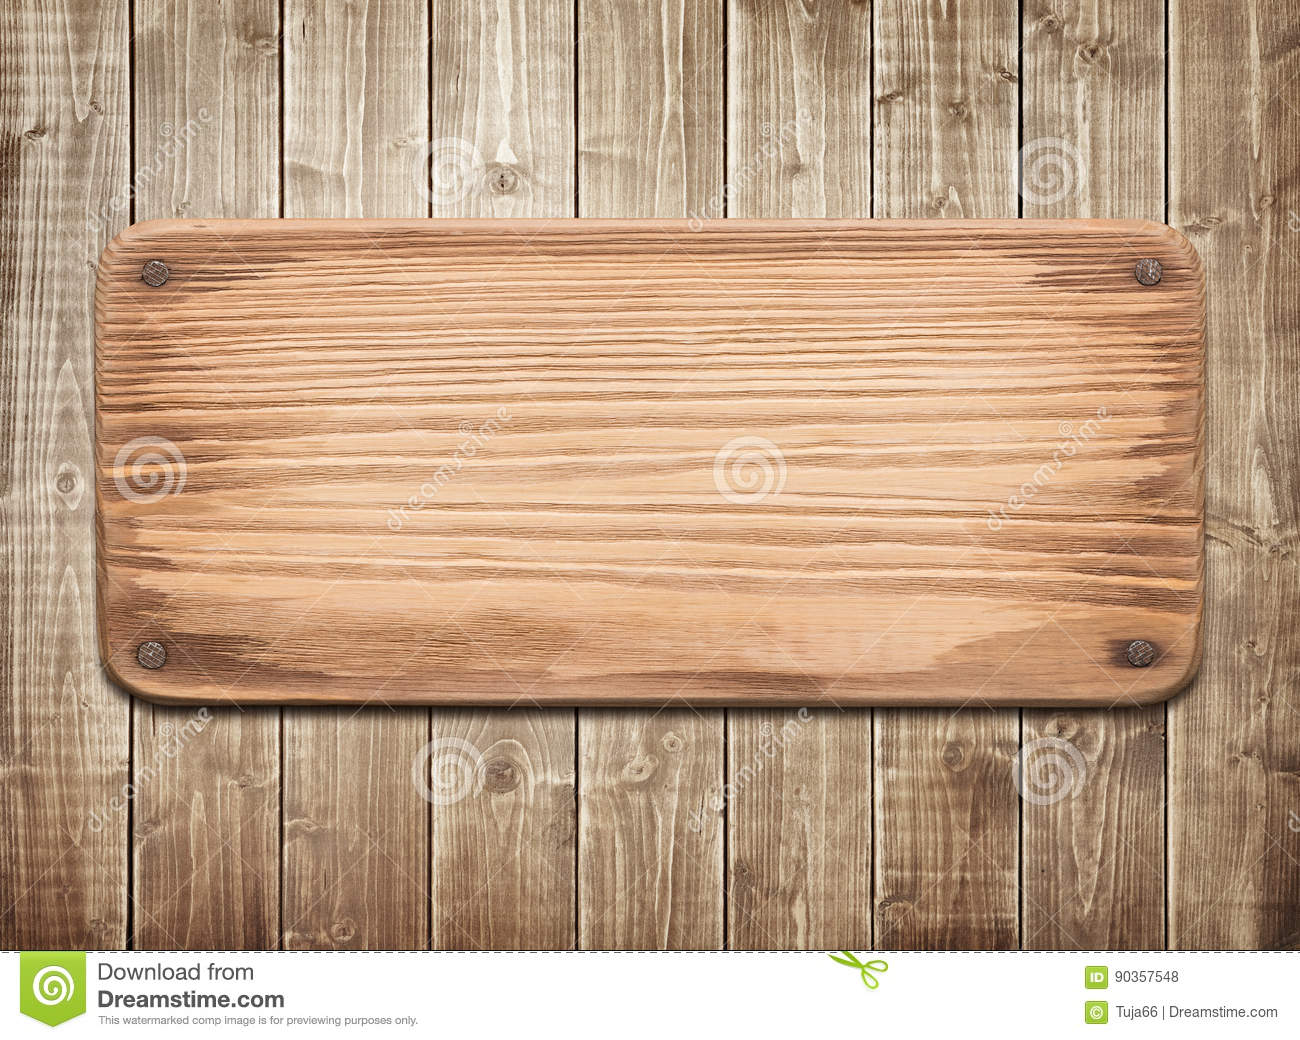 Rustic Wood Boards ~ Rustic wood board with nails stock photo image of